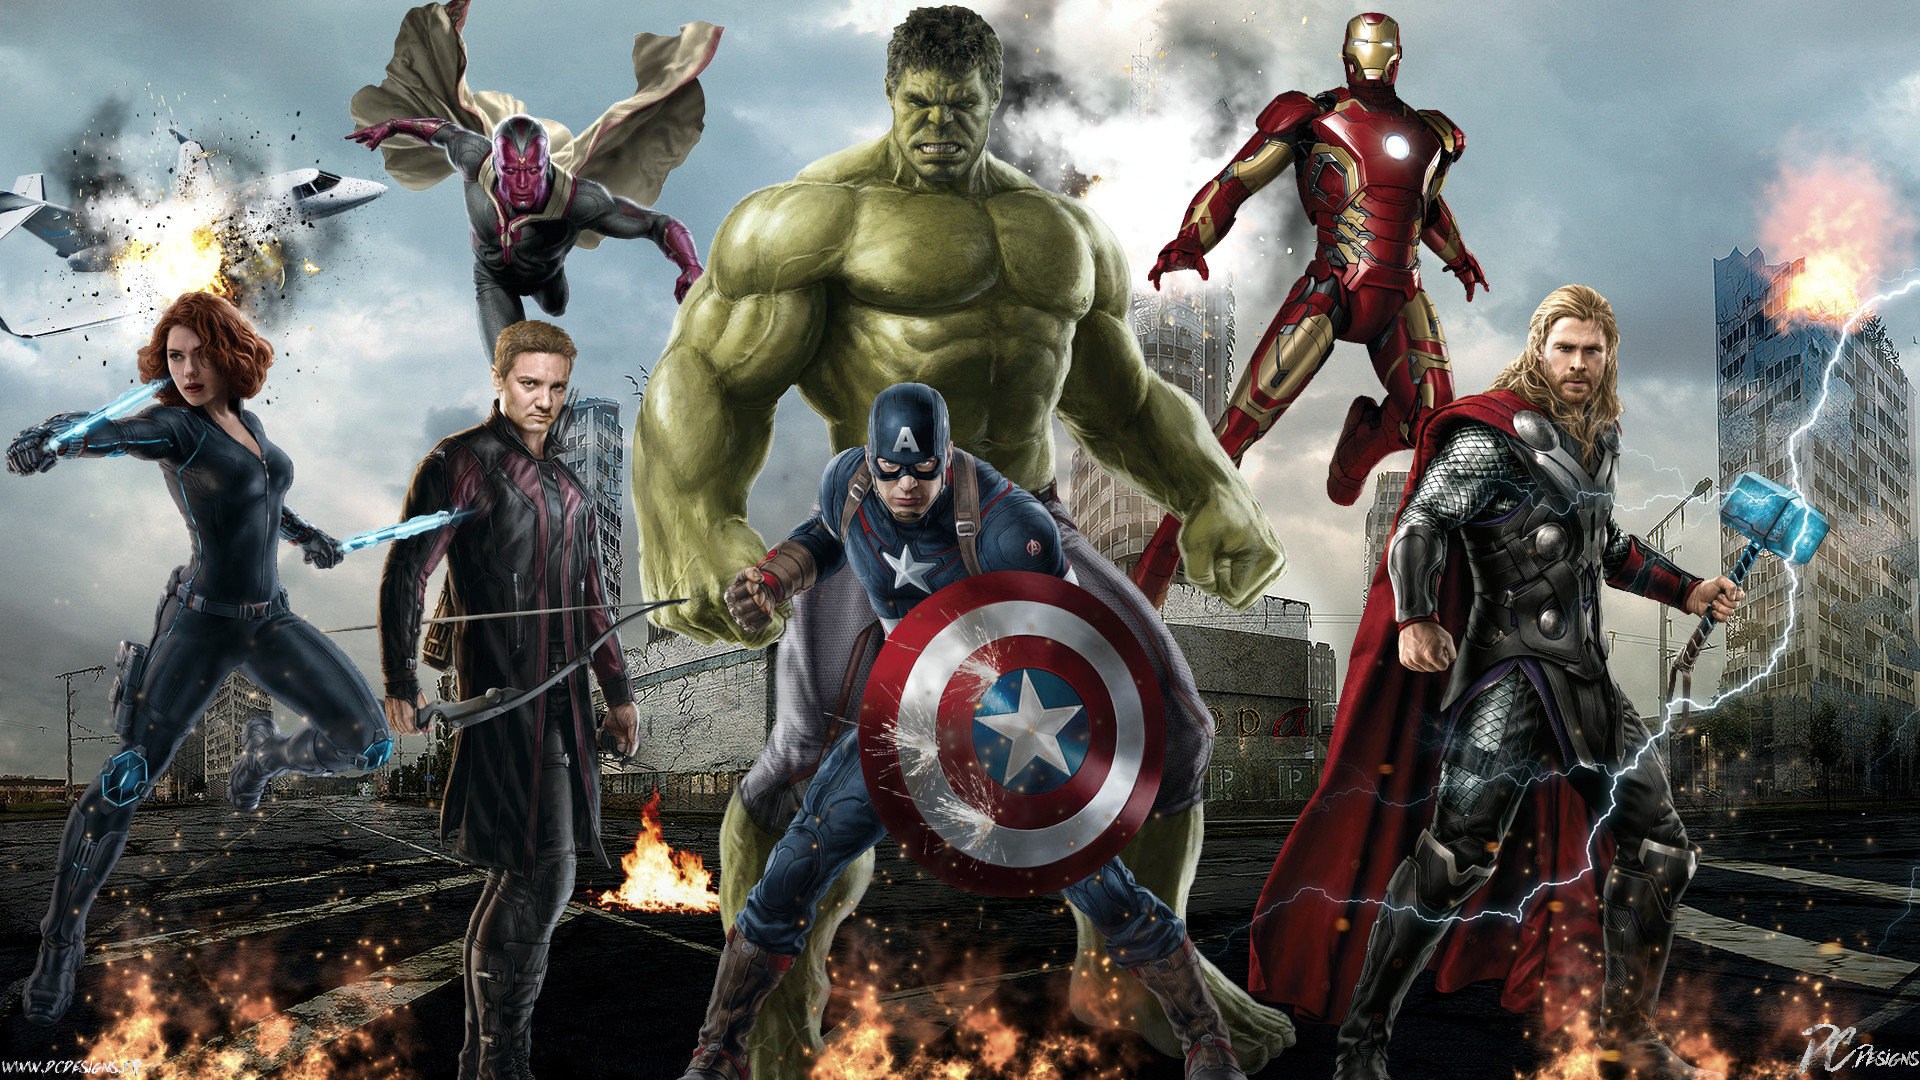 Download Hd 1080p Avengers Age Of Ultron Computer Wallpaper Id